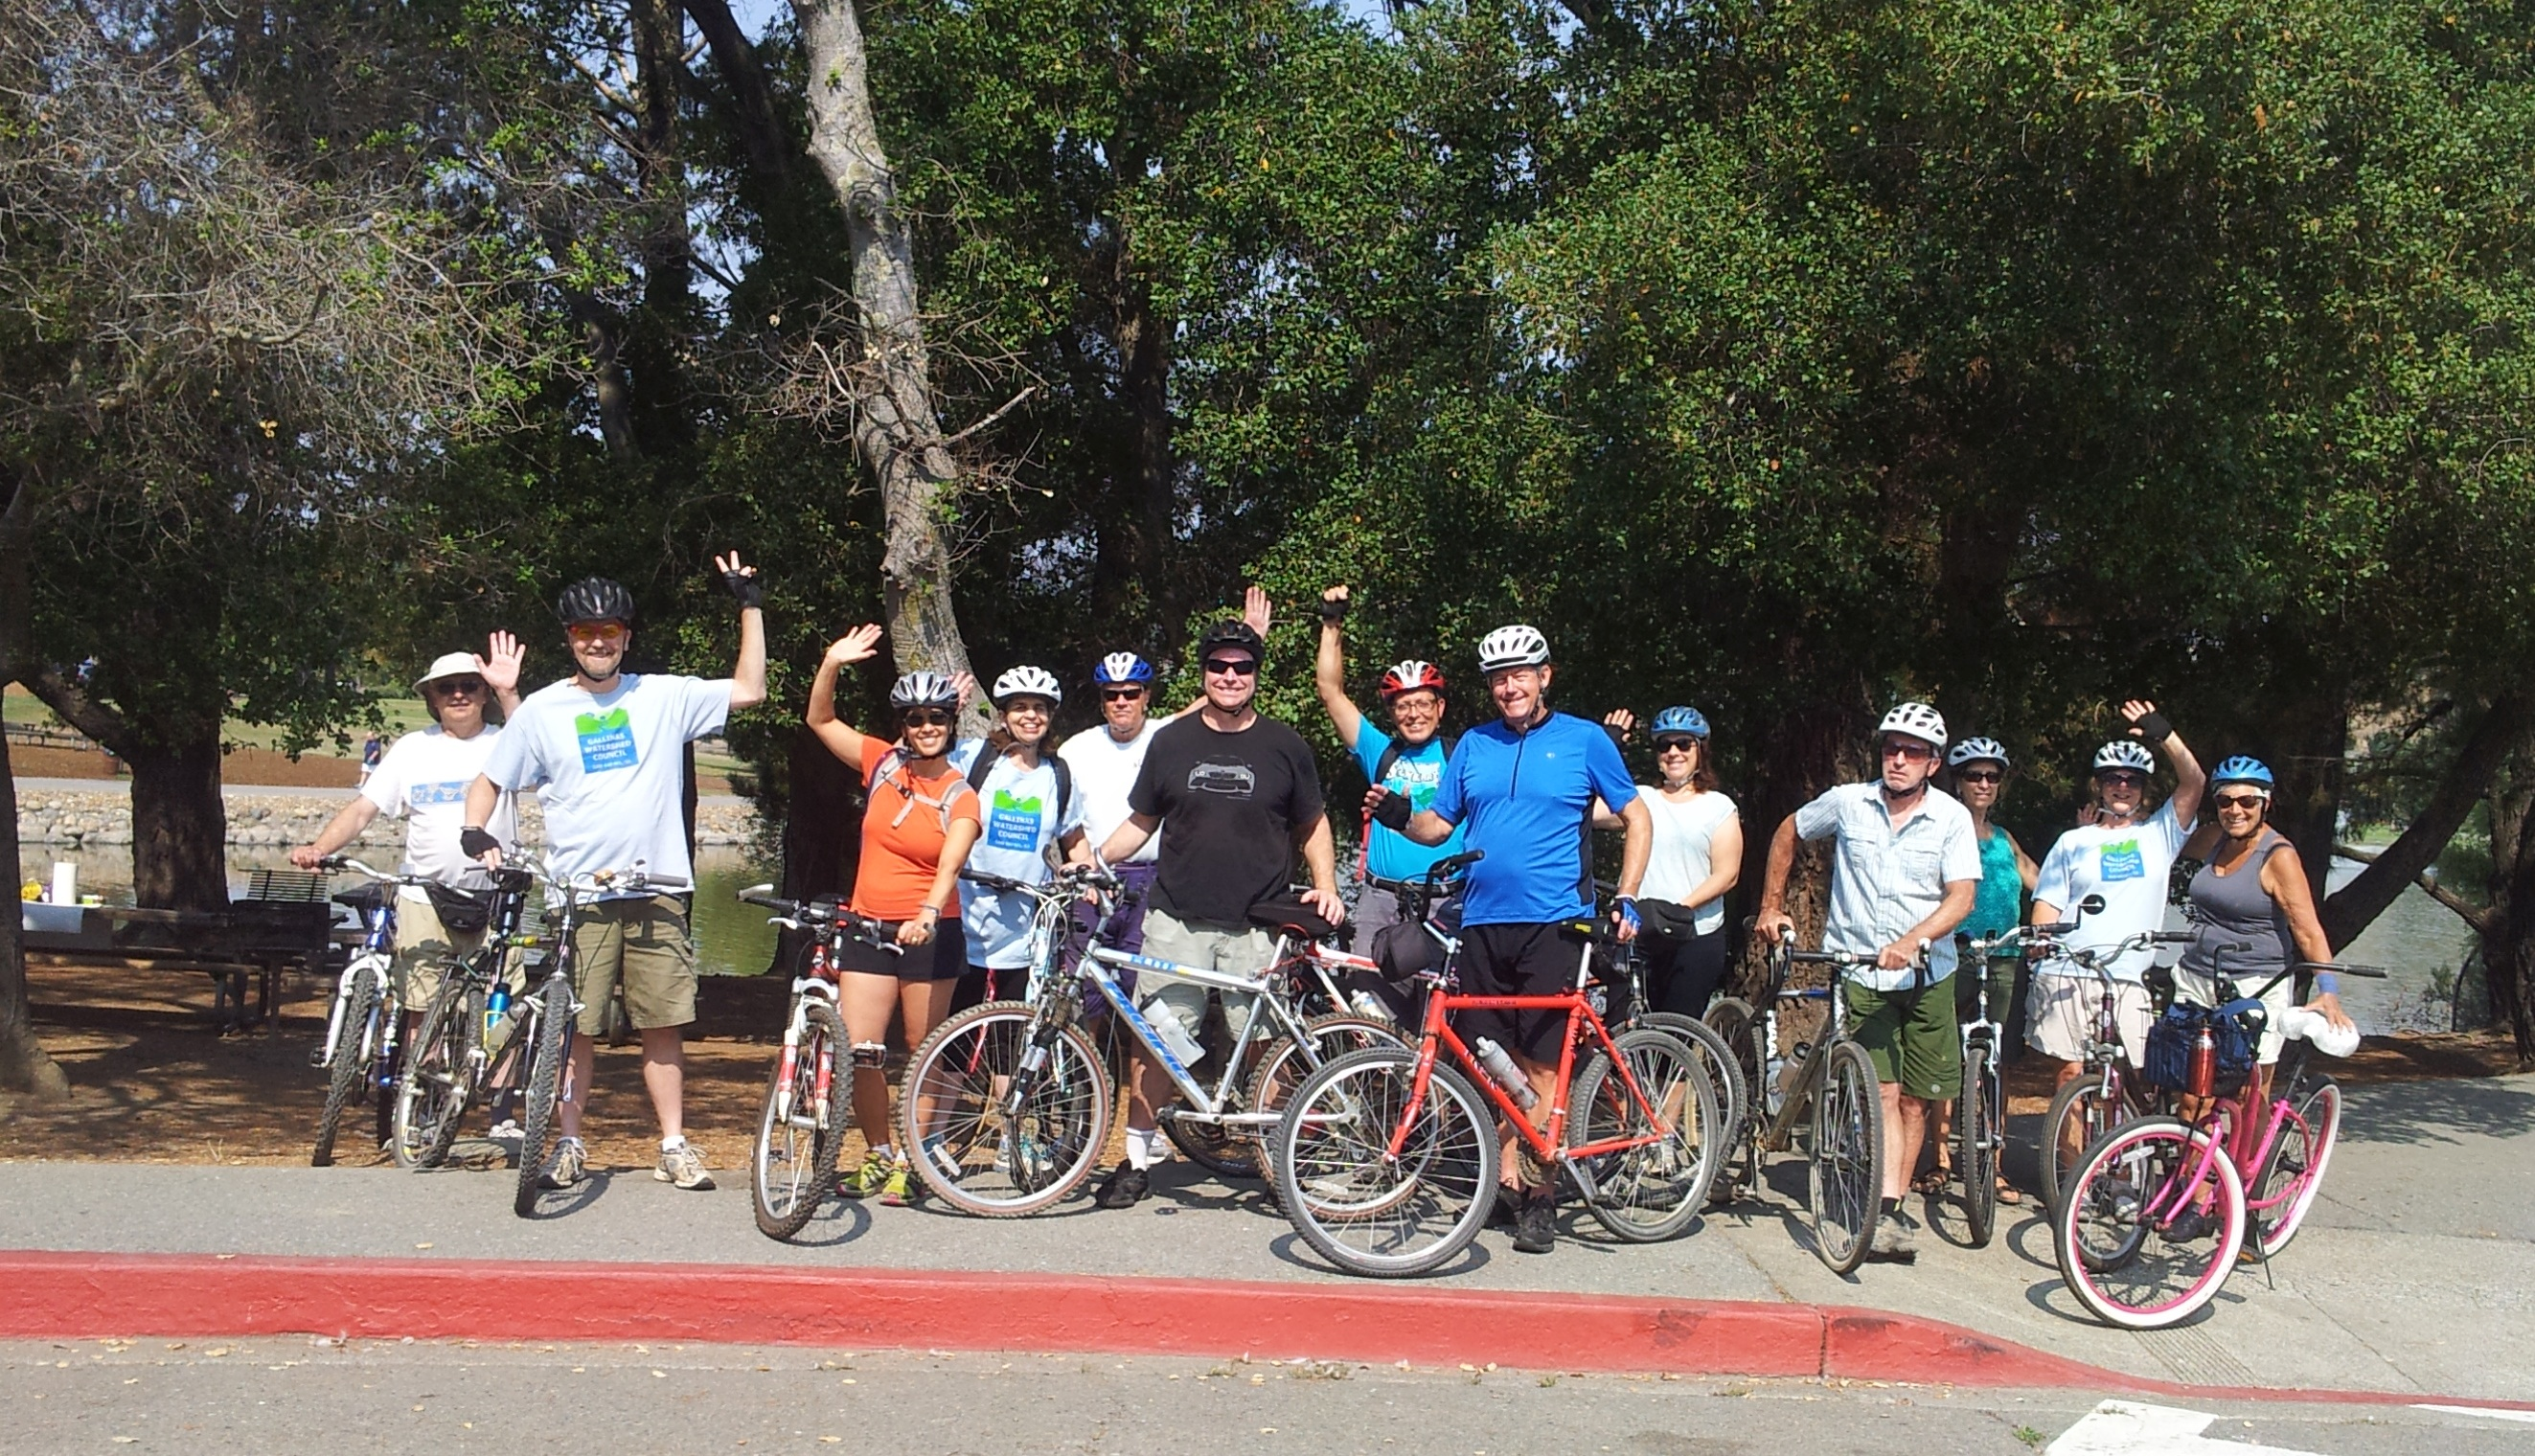 6th GWC Bicycle Tour on August 20: Bike the Watershed VI